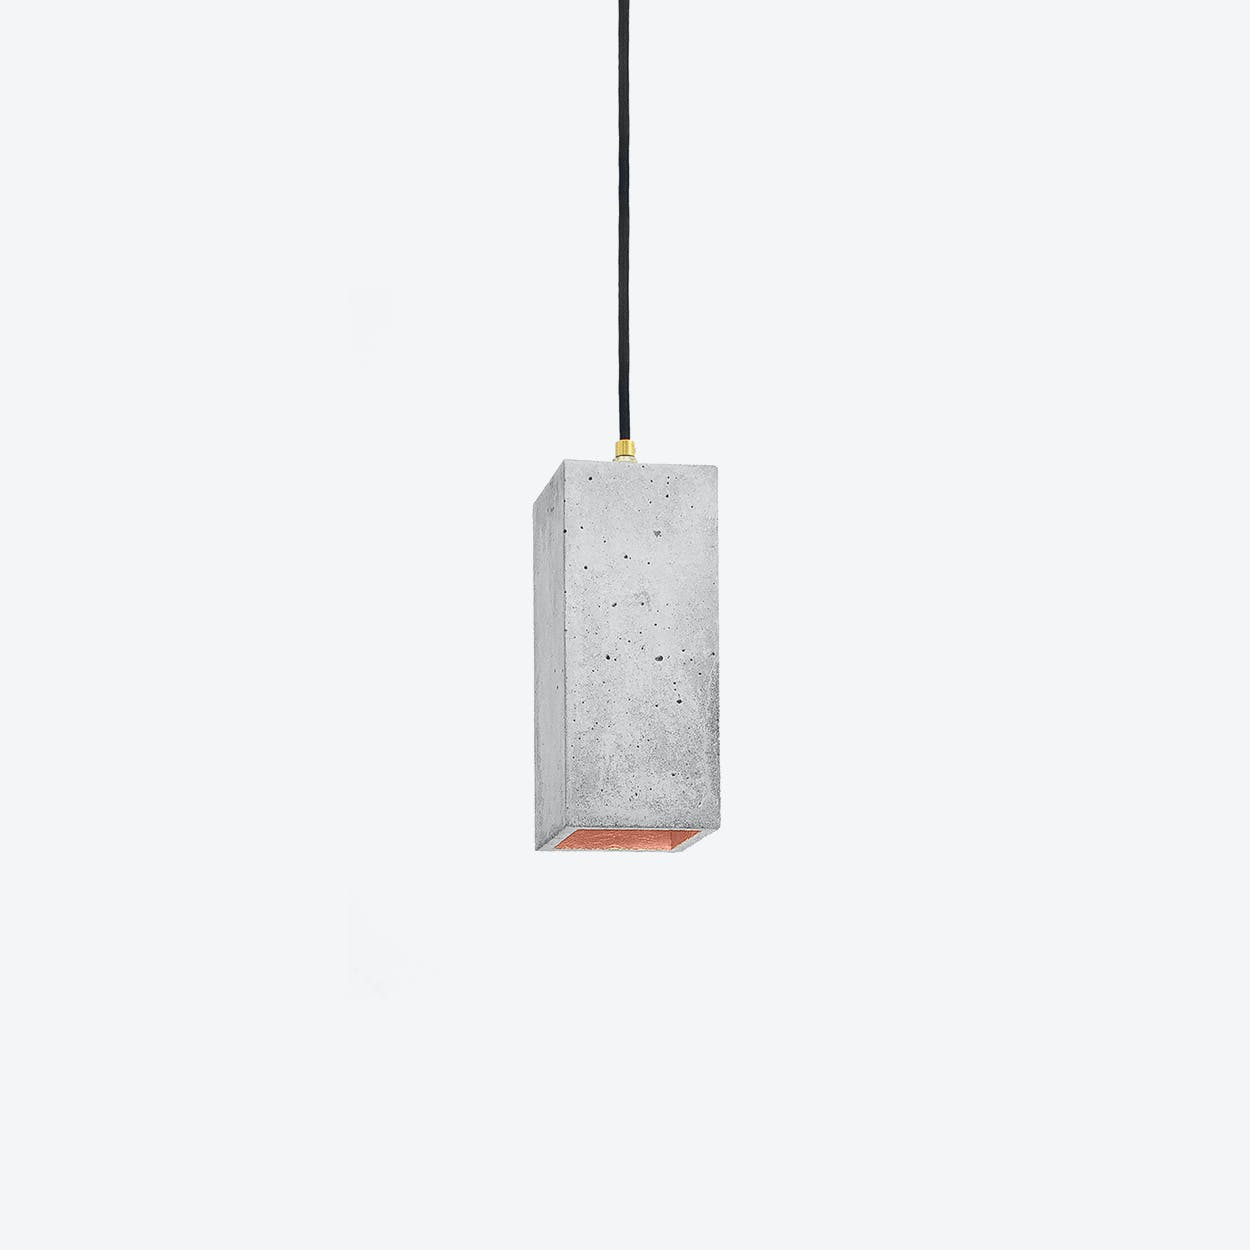 Concrete Pendant Light Retangular B2 in Light Grey and Copper